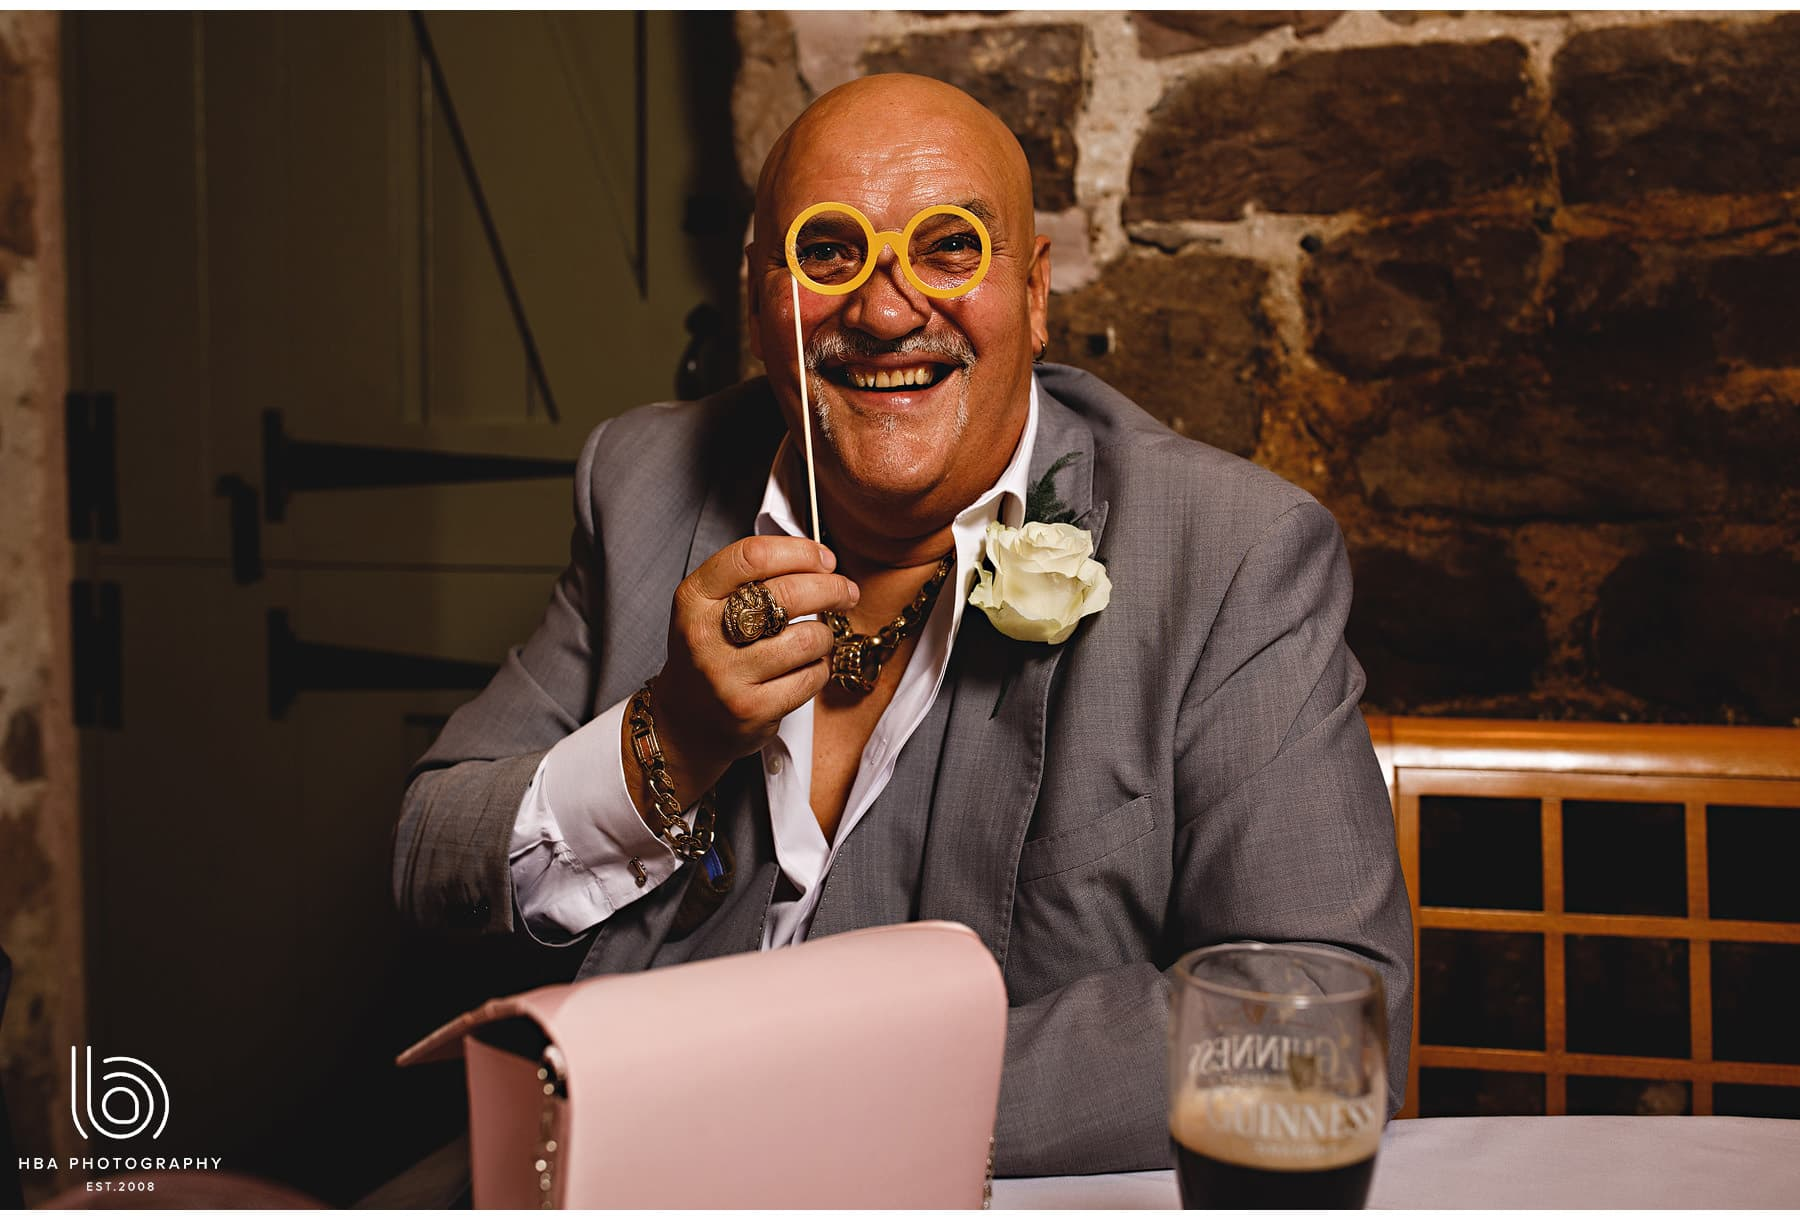 a guest at the wedding wearing funny glasses